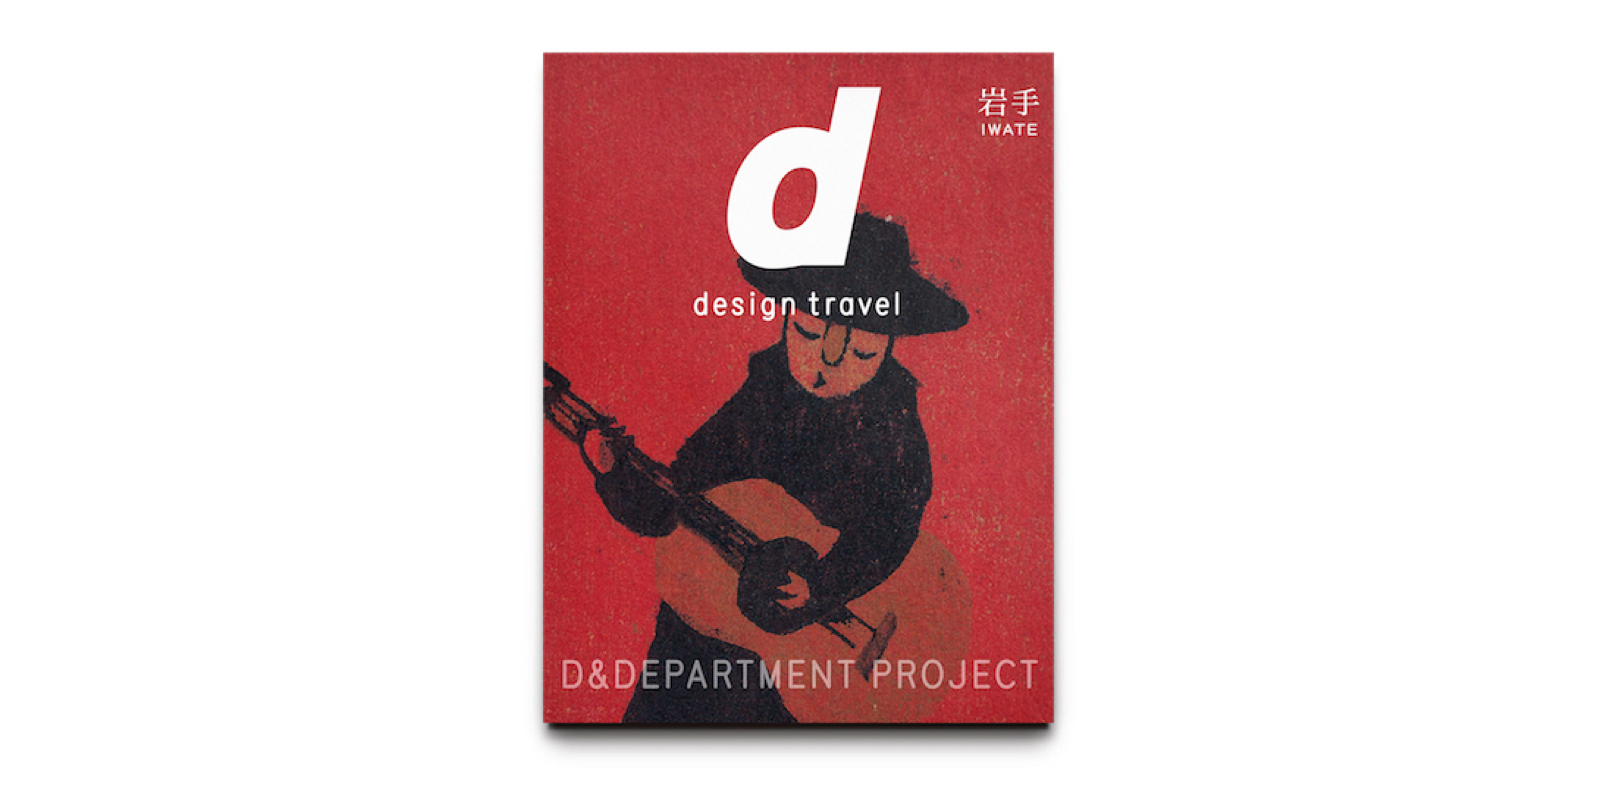 d design travel 岩手